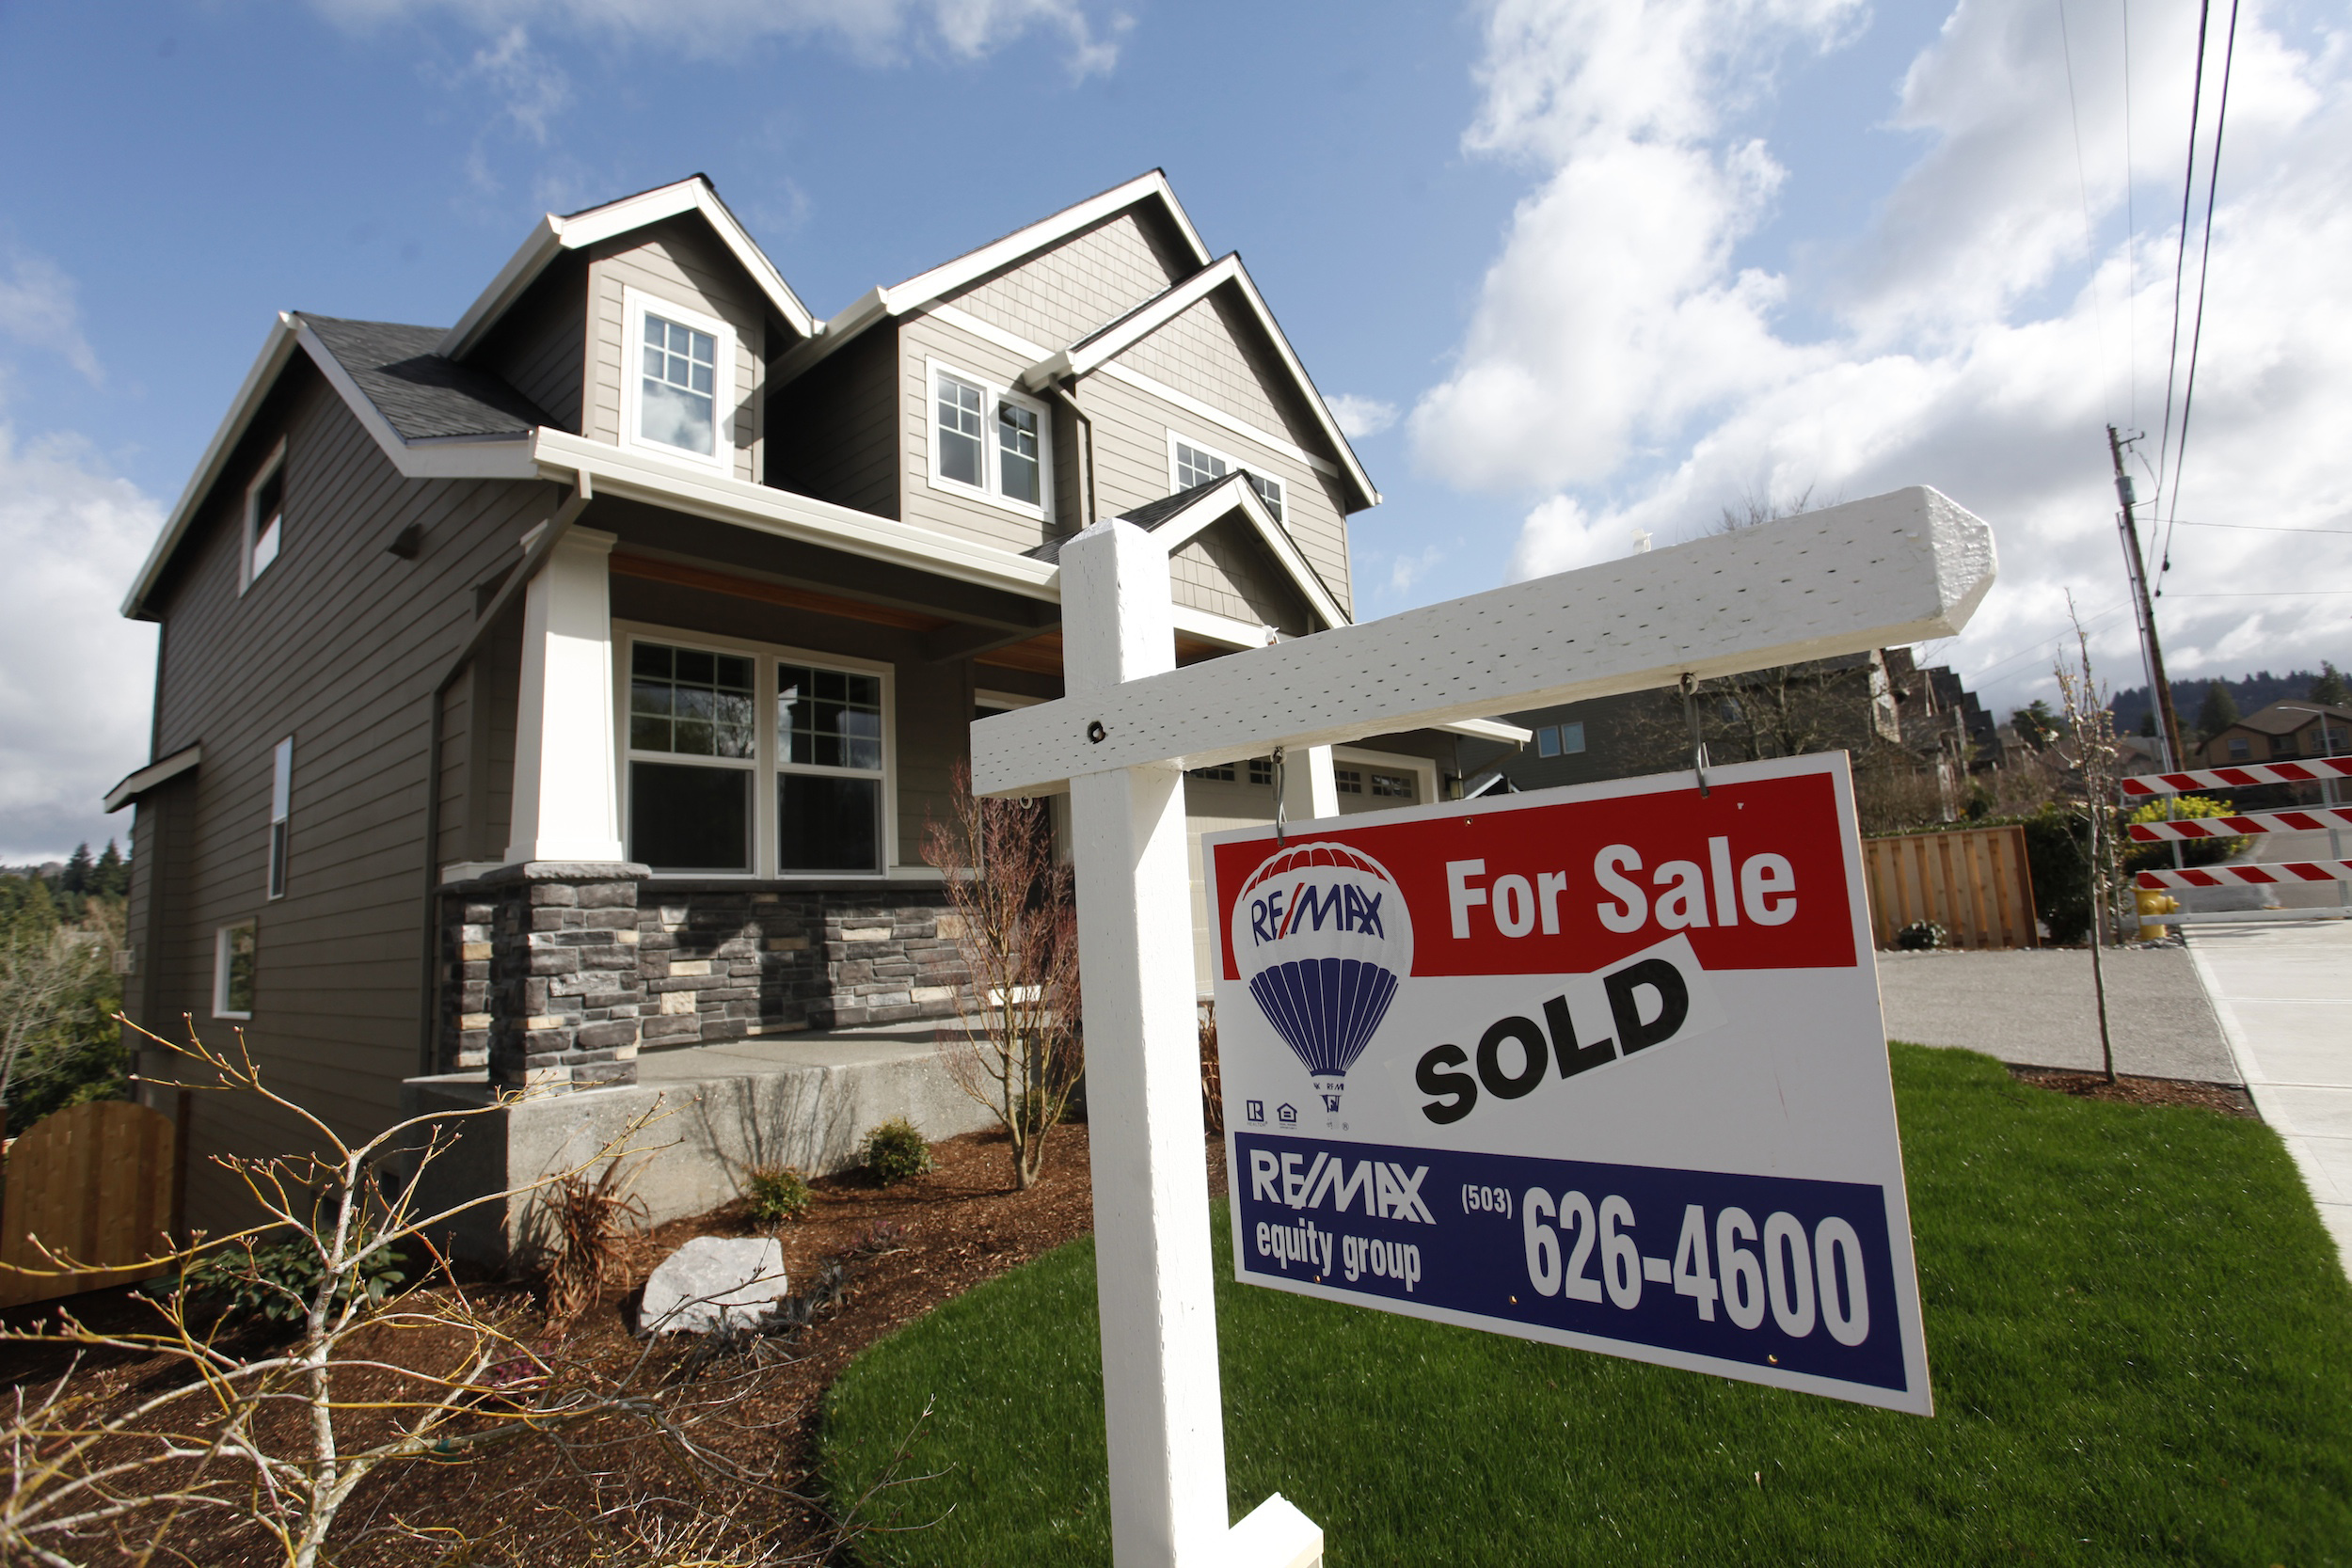 Homes are seen for sale in the northwest area of Portland, Oregon, in this file photo taken March 20, 2014. U.S. home resales surged to their highest level in 18 months in March as inventories improved, a sign of strength in the housing market ahead of the spring selling season.  REUTERS/Steve Dipaola/Files - TM3EB4M0S7J01